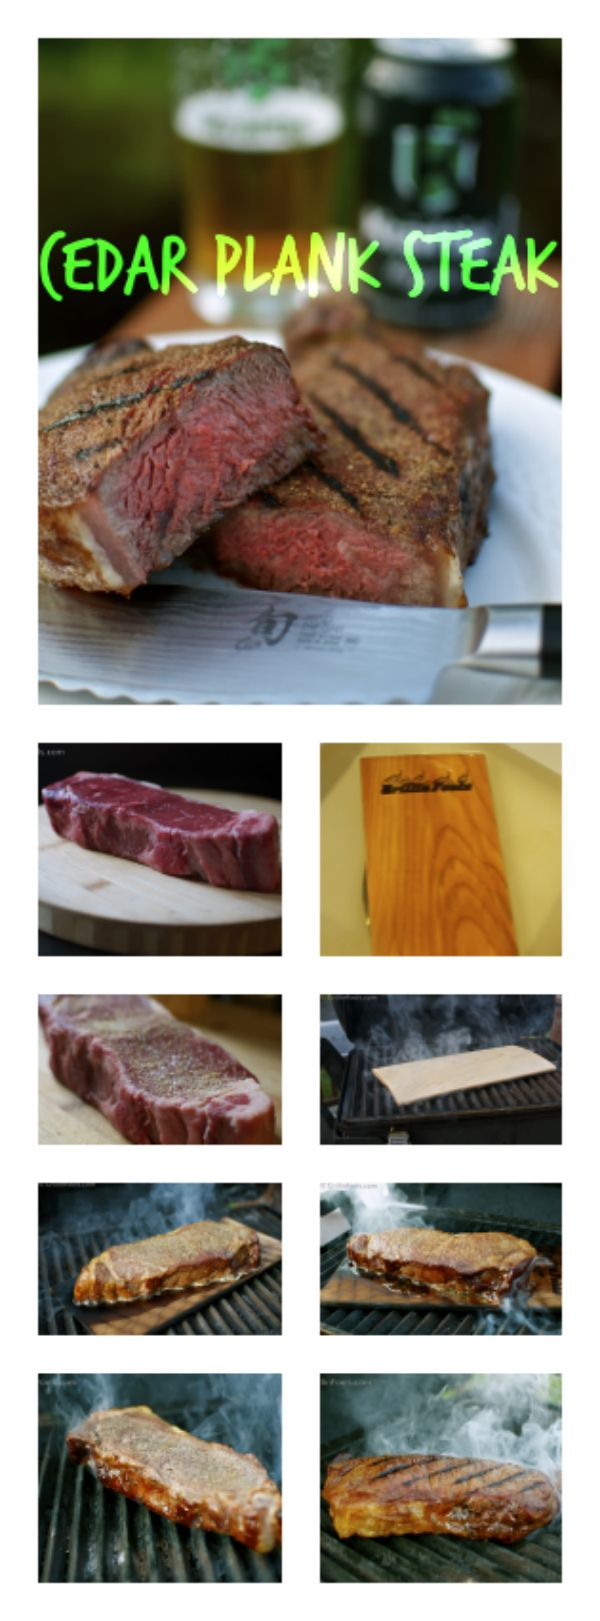 Cedar planks aren't just for salmon. Cedar plank steak is fantastic. Step by step, picture by picture, foolproof instructions on how to make cedar plank steak. | Cedar Plank Steak | https://grillinfools.com